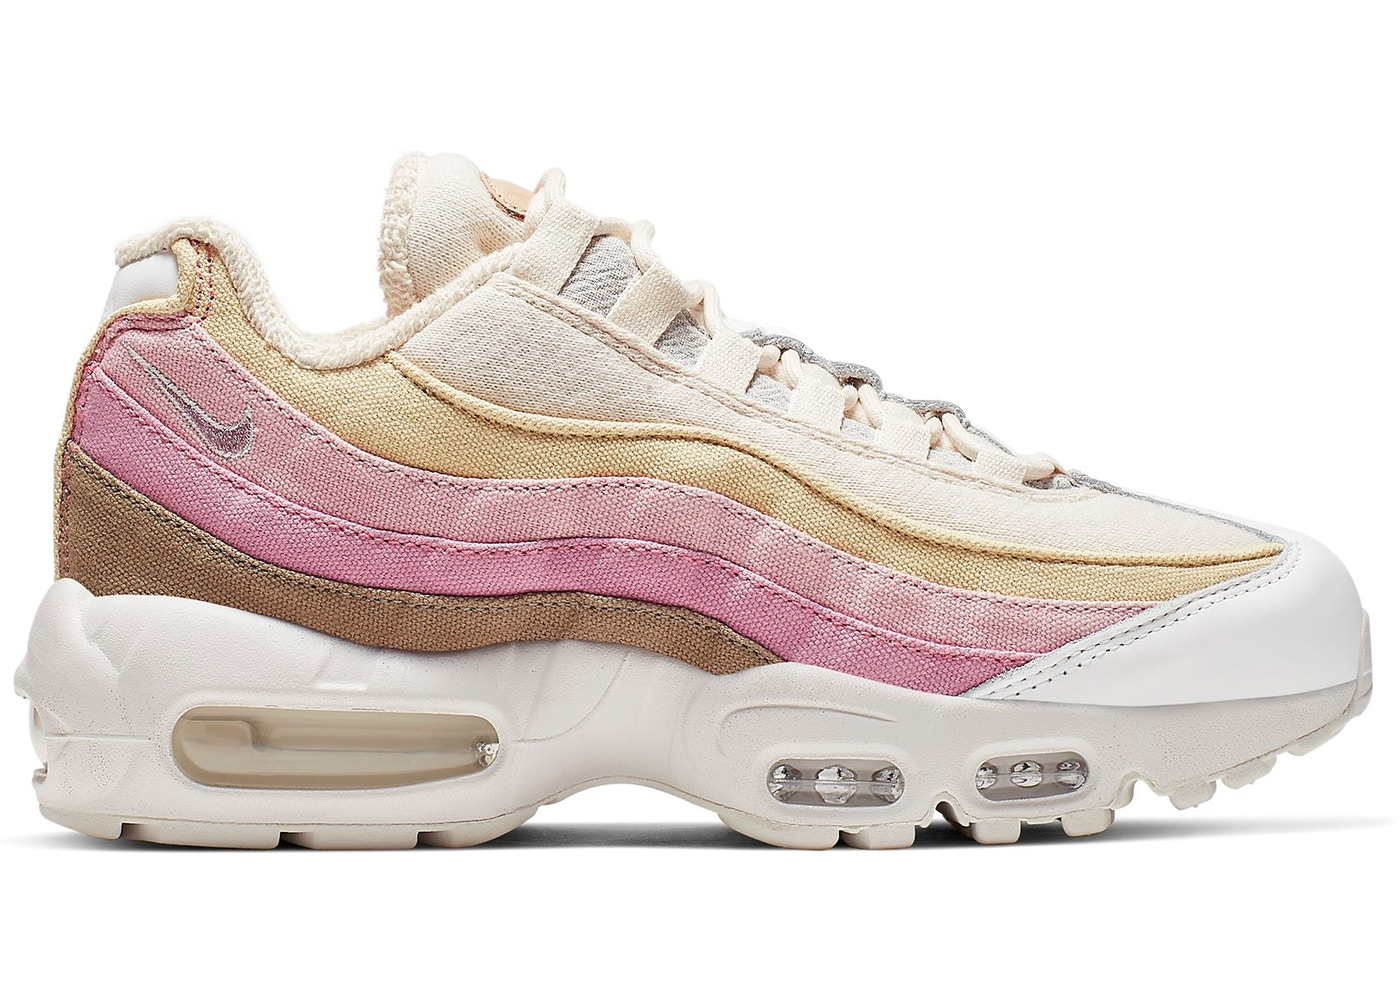 super popular 3c67e b05c3 Sell. or Ask. Size  6W. View All Bids. Air Max 95 ...